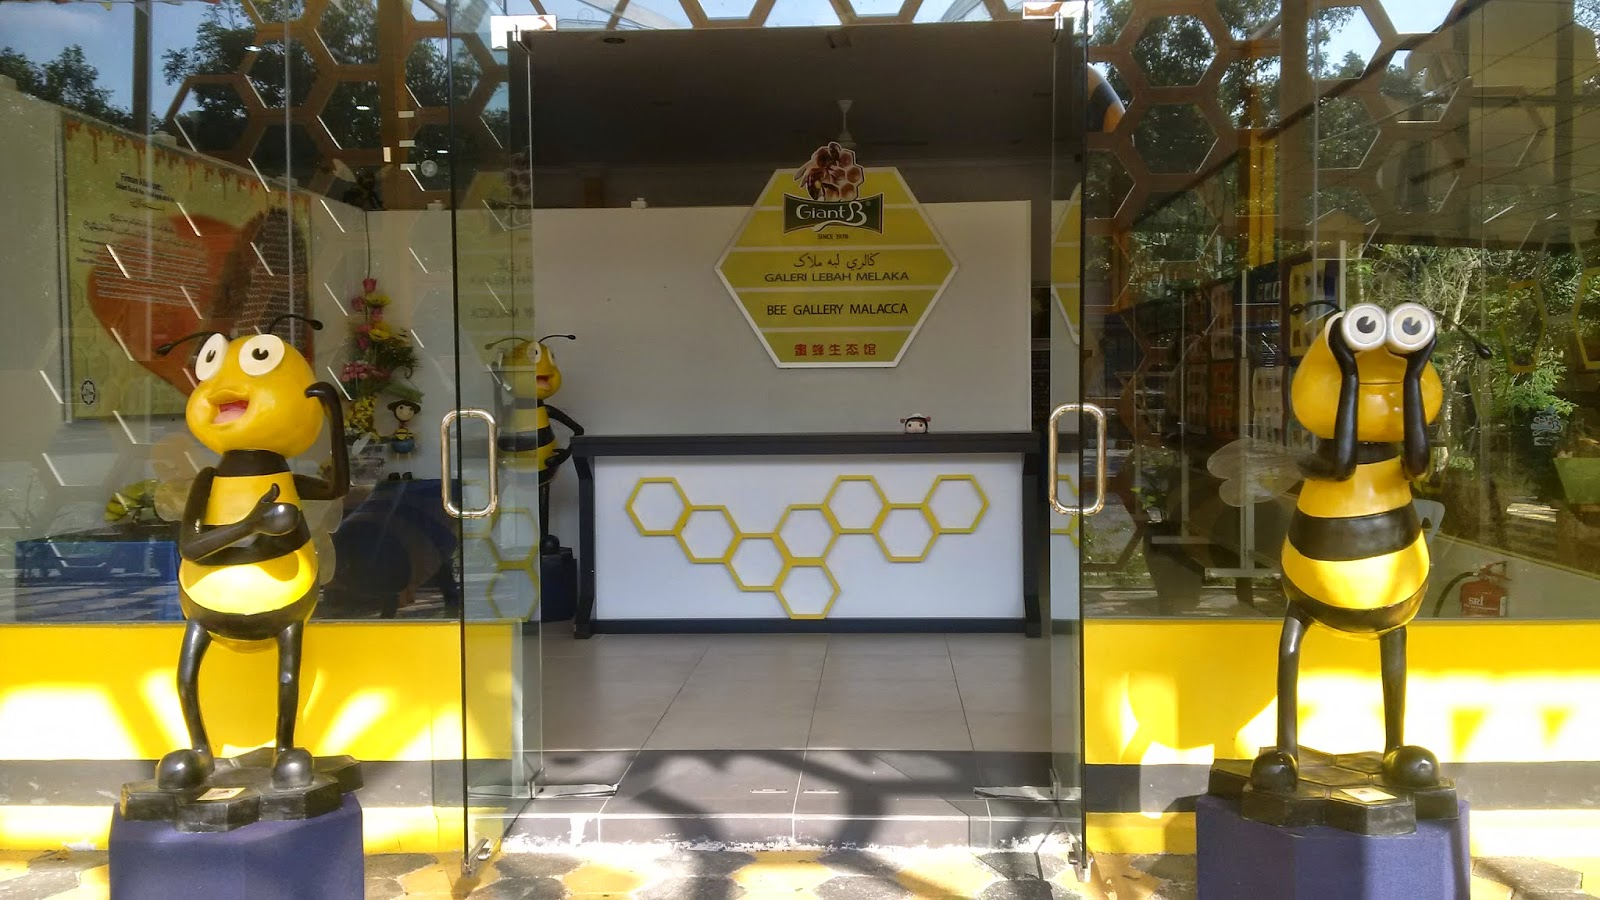 bee gallery melaka, galeri labah melaka, how the honey is made, homemade honey, hive honey, honey tasting, free entry, travel, toruism